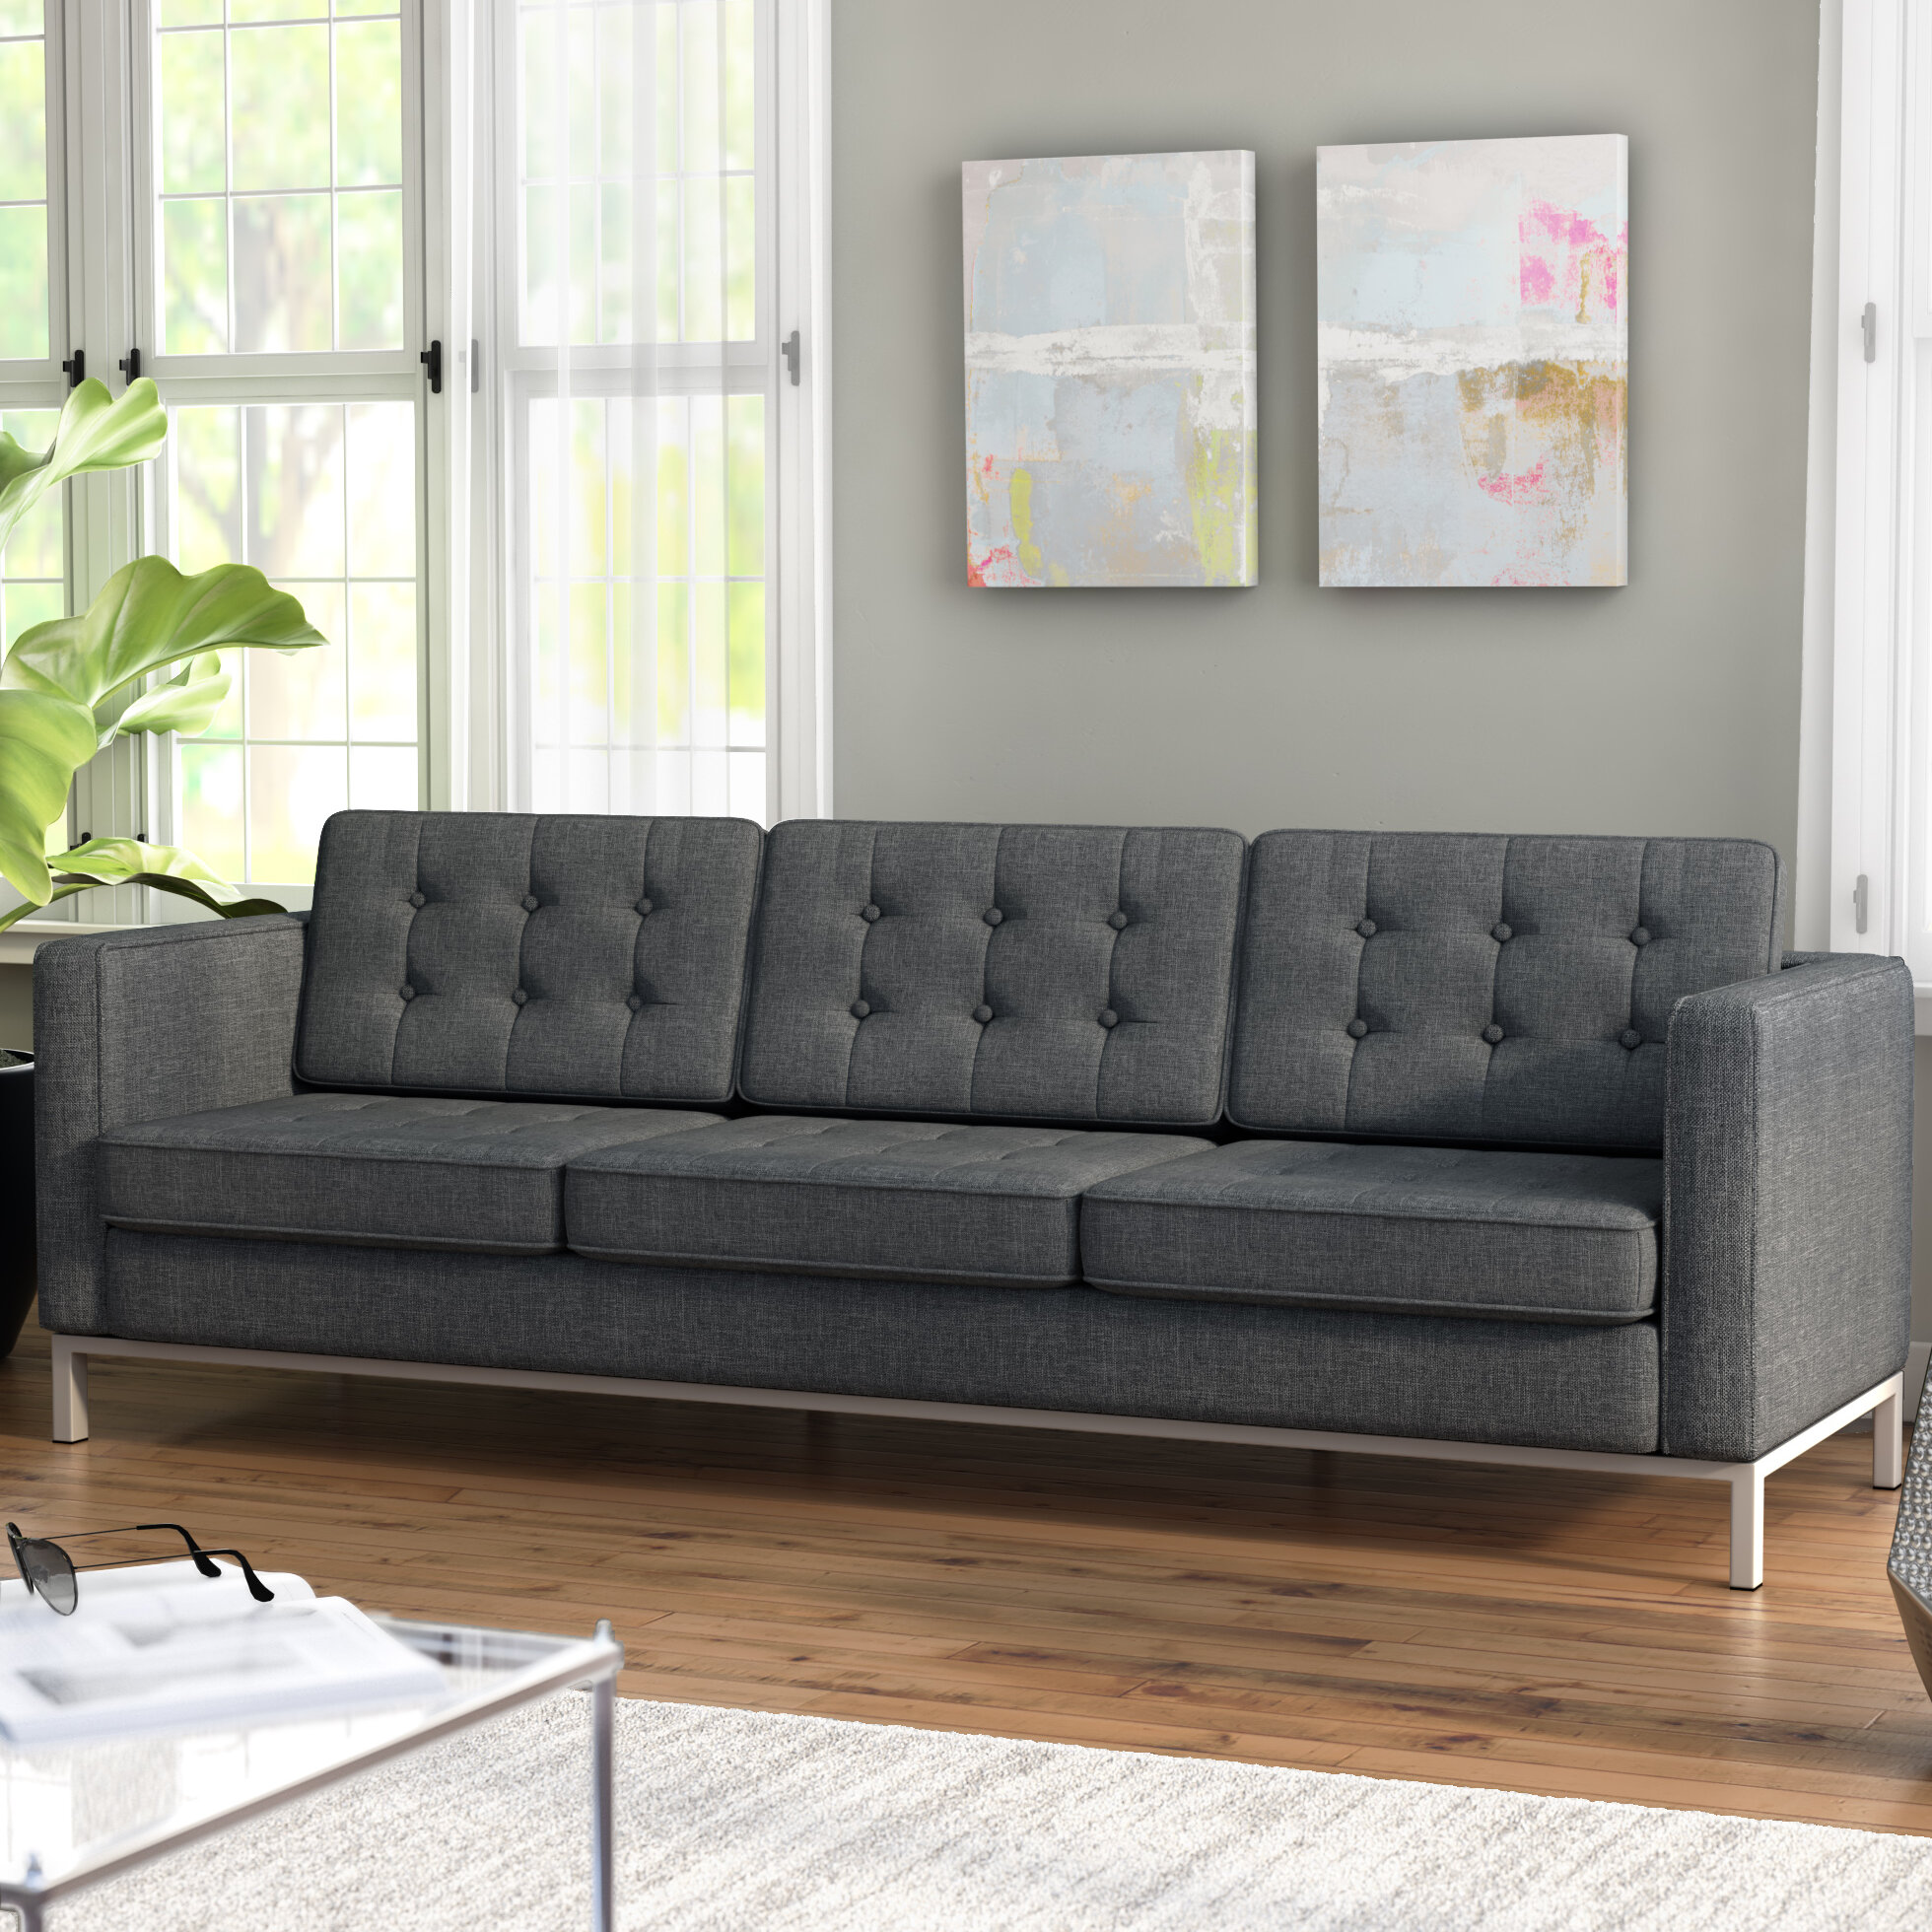 Superb Modern Orren Ellis Sofas Couches Allmodern Home Interior And Landscaping Mentranervesignezvosmurscom